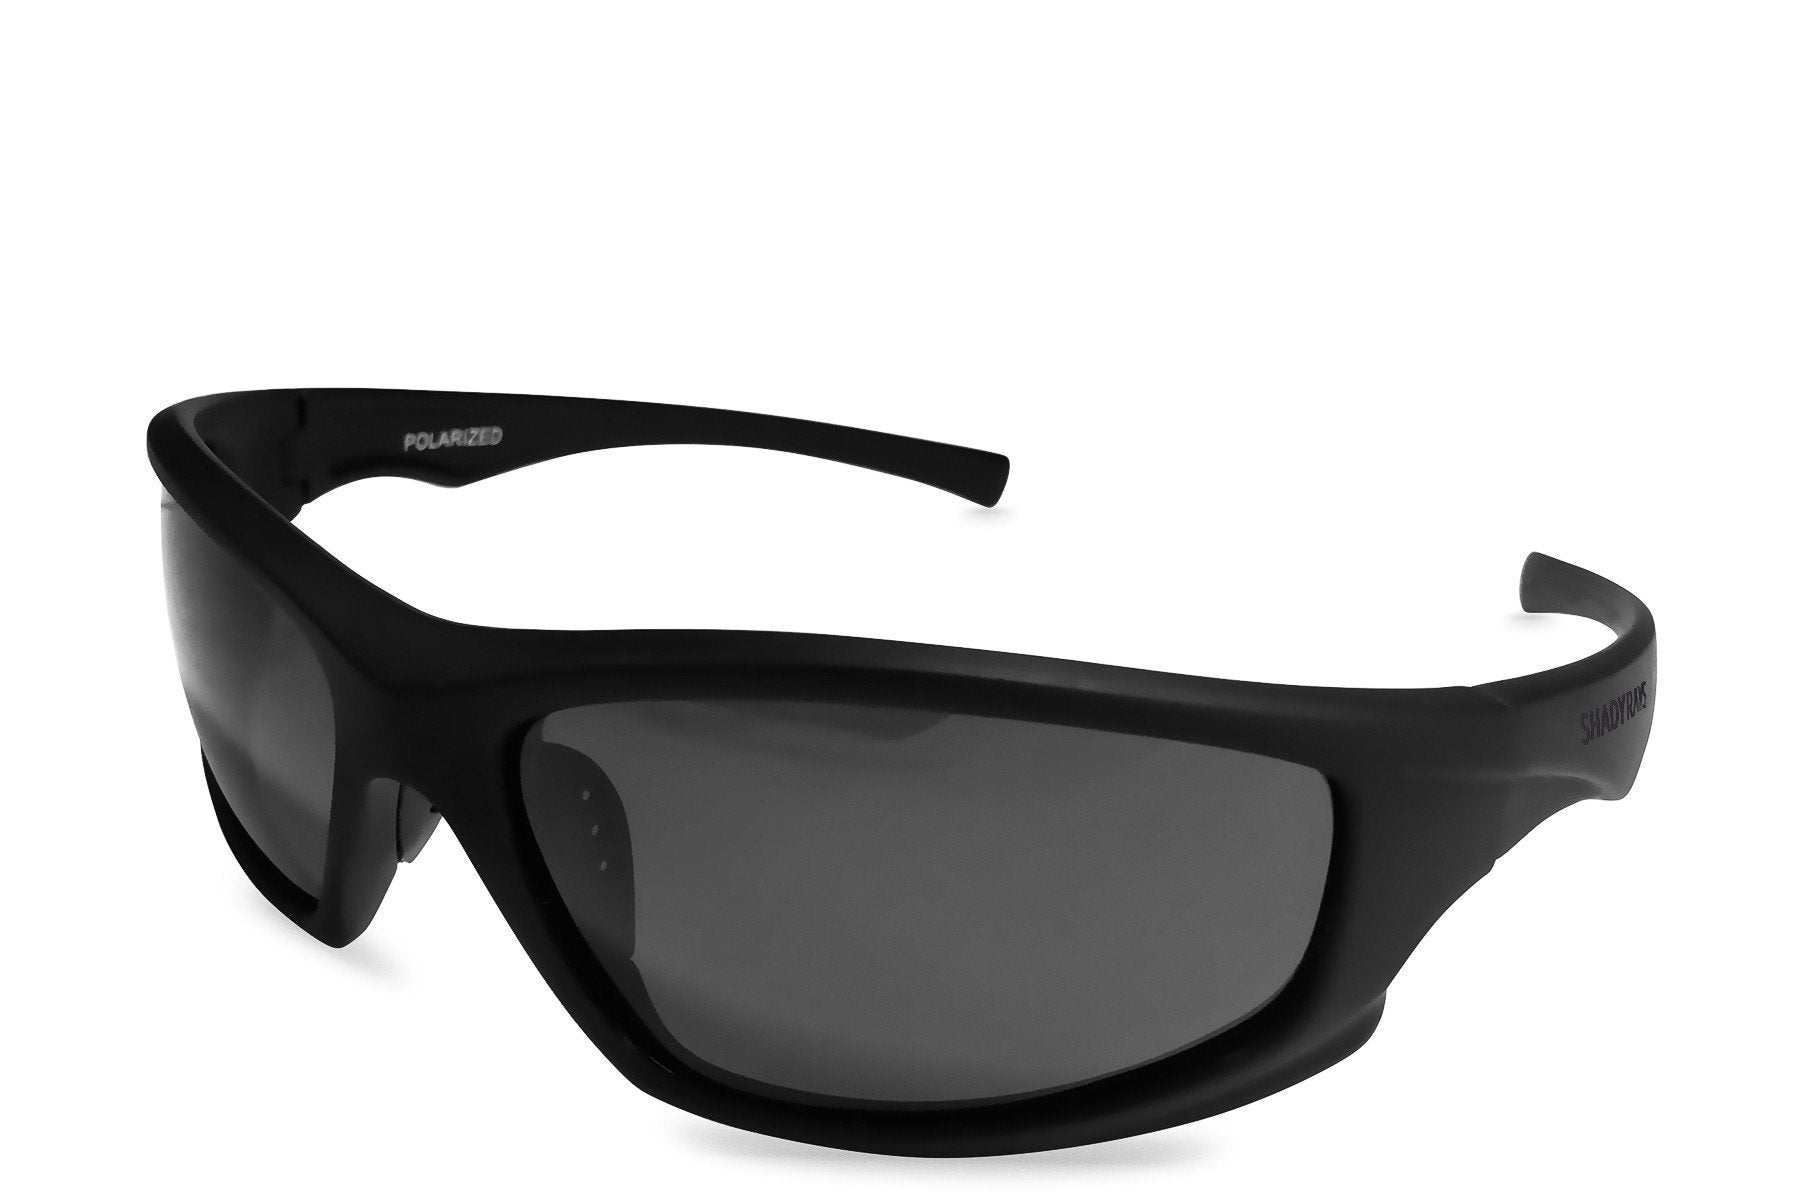 506737f687 Shady Rays X Series - Blackout Polarized INCOGNITO Sunglasses